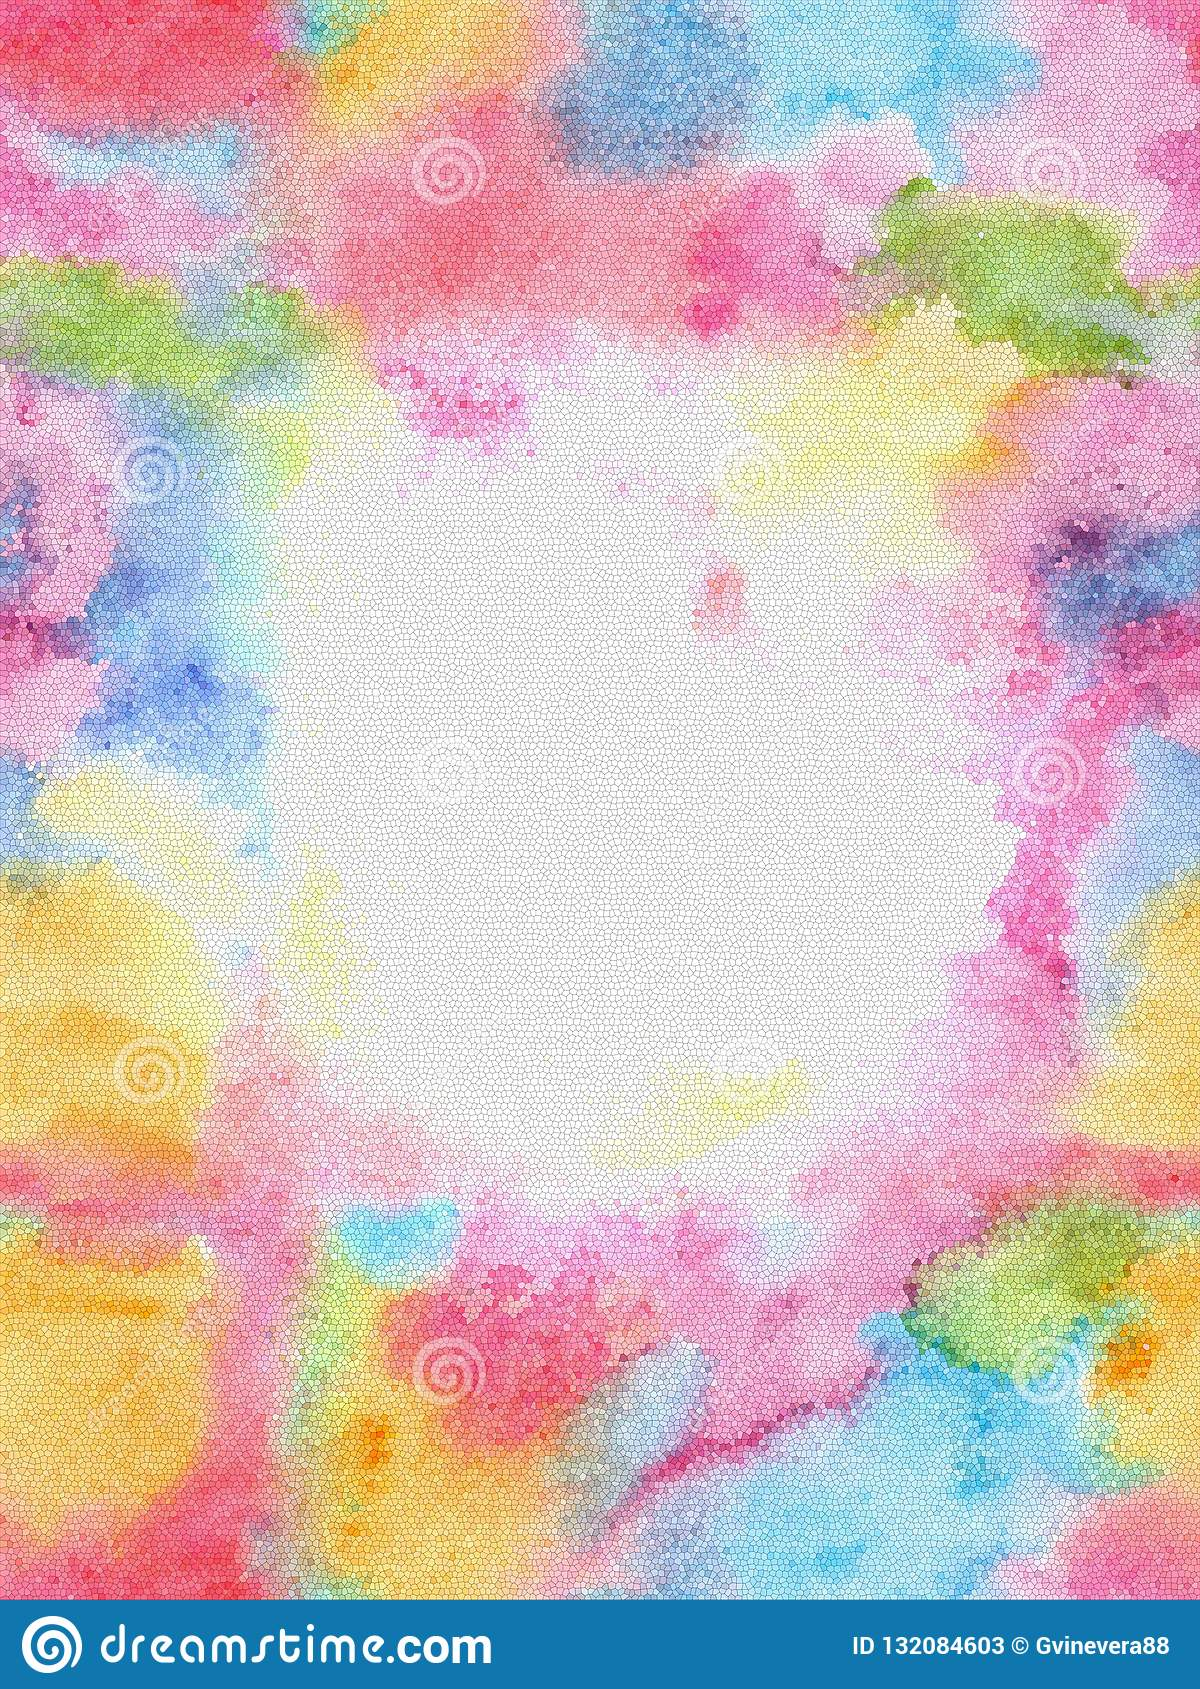 Watercolor Background Image - Decorative Composition. Use ... on renewable resource maps, teaching maps, nautical maps, basic maps, dungeon magazine maps, beautiful maps, classic maps, religious maps, land survey maps, decorating with globes and maps, cartography maps, elegant maps, googel maps, groundwater maps, simple maps, fill in the blank maps, useful maps, wall maps, arcgis maps,